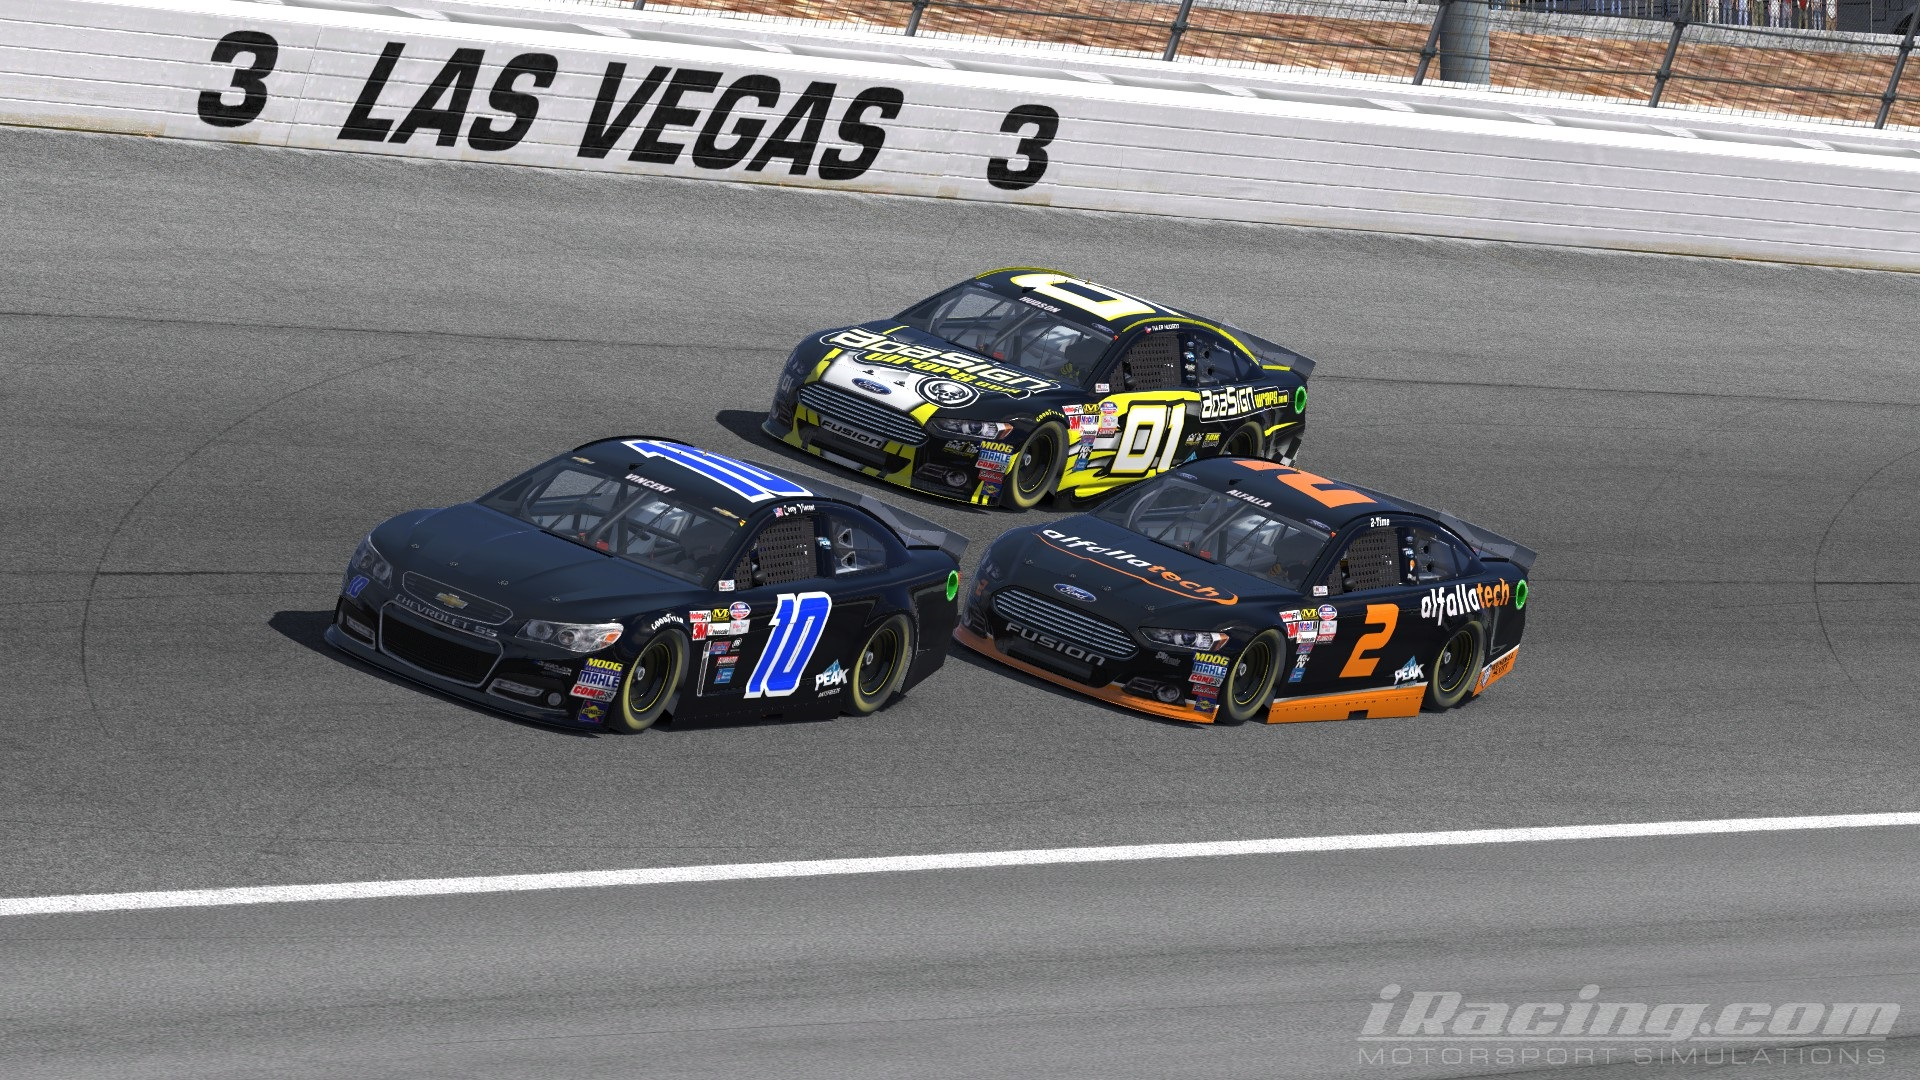 Vincent takes nascar victory at las vegas for How long is las vegas motor speedway